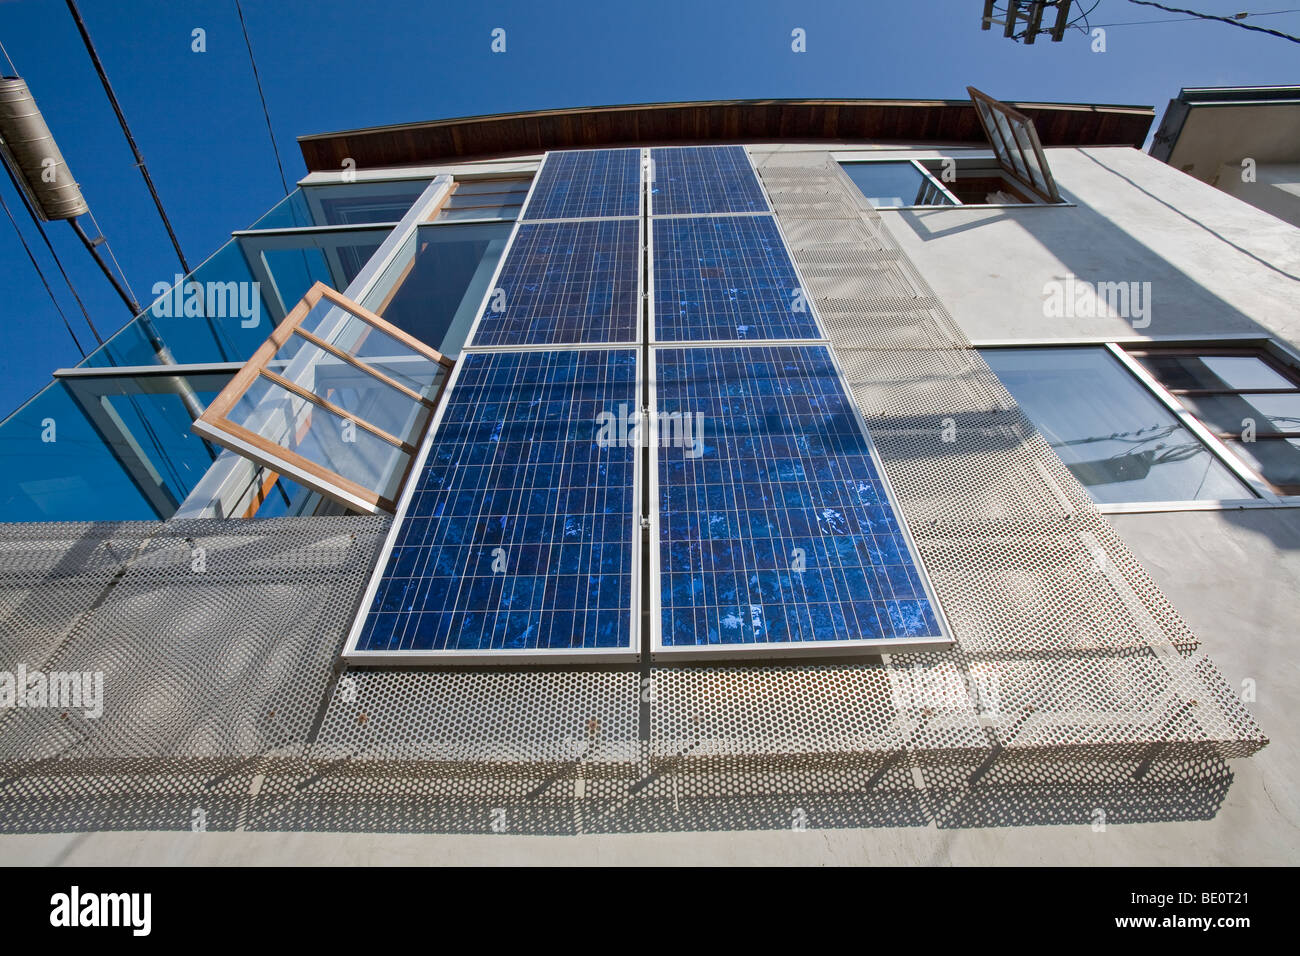 Solar Array on the side of house in Venice, Los Angeles, California, USA - Stock Image